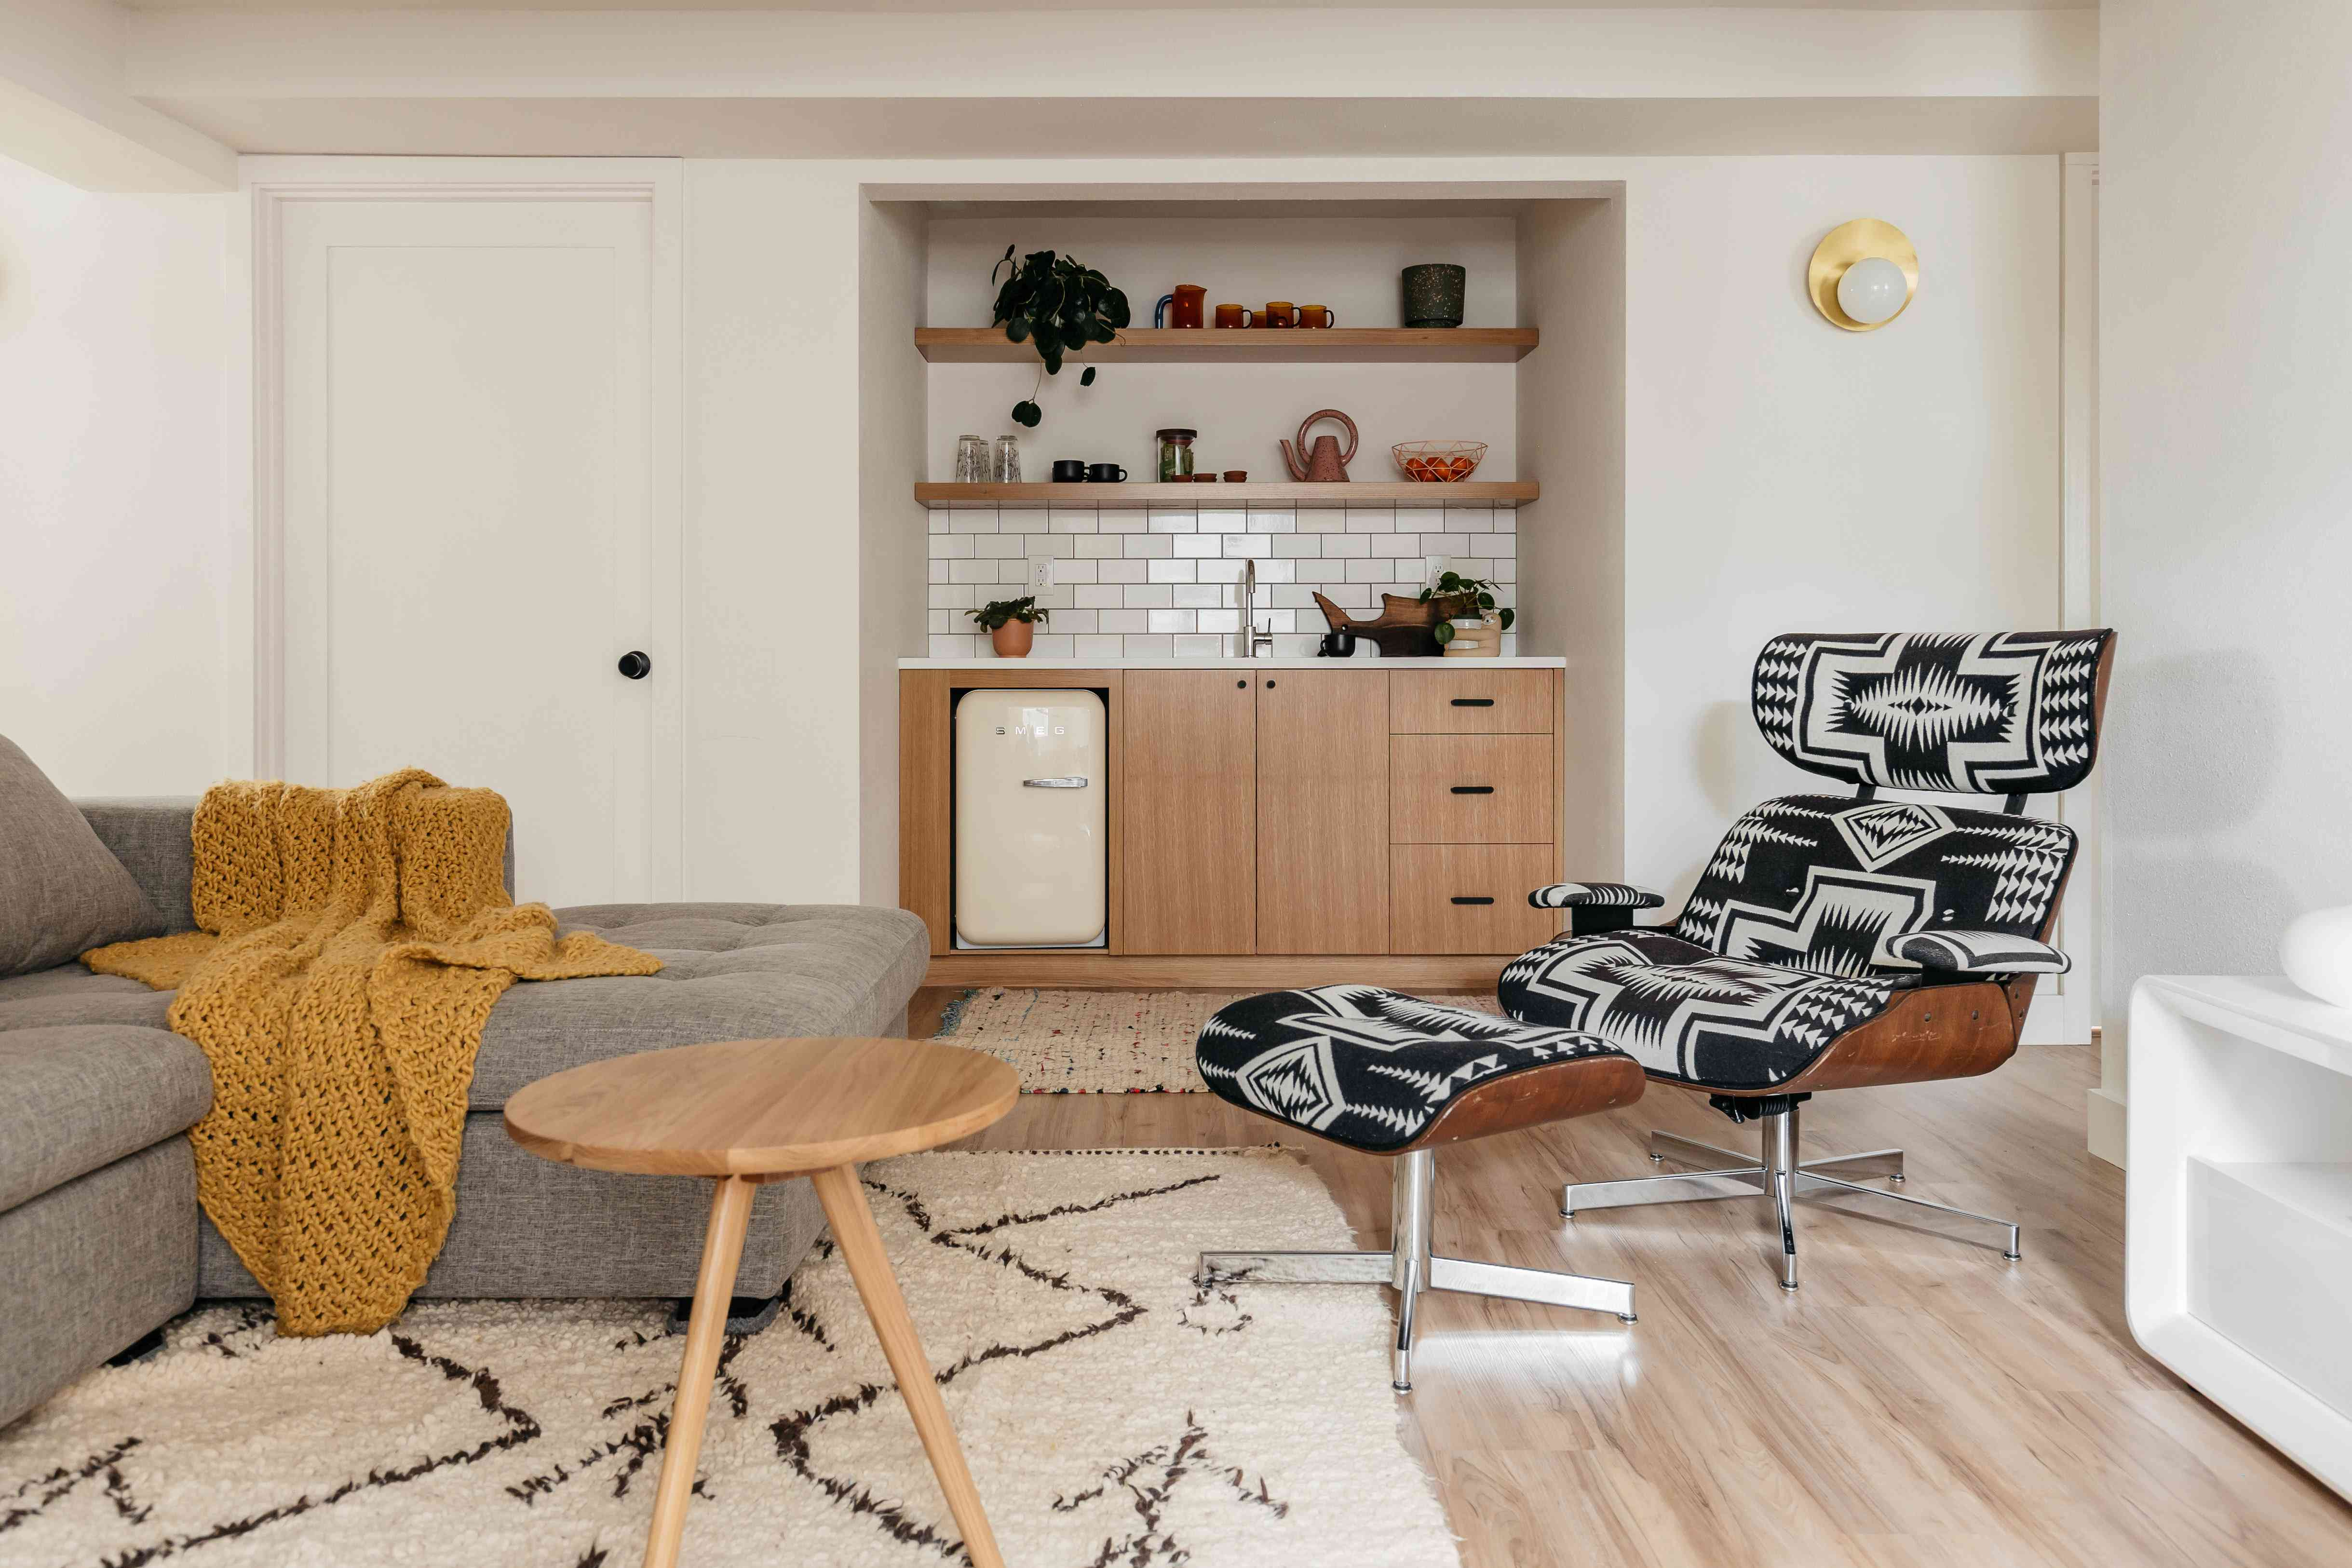 10 Beautiful Finished Basements You Ll Want To Copy At Home